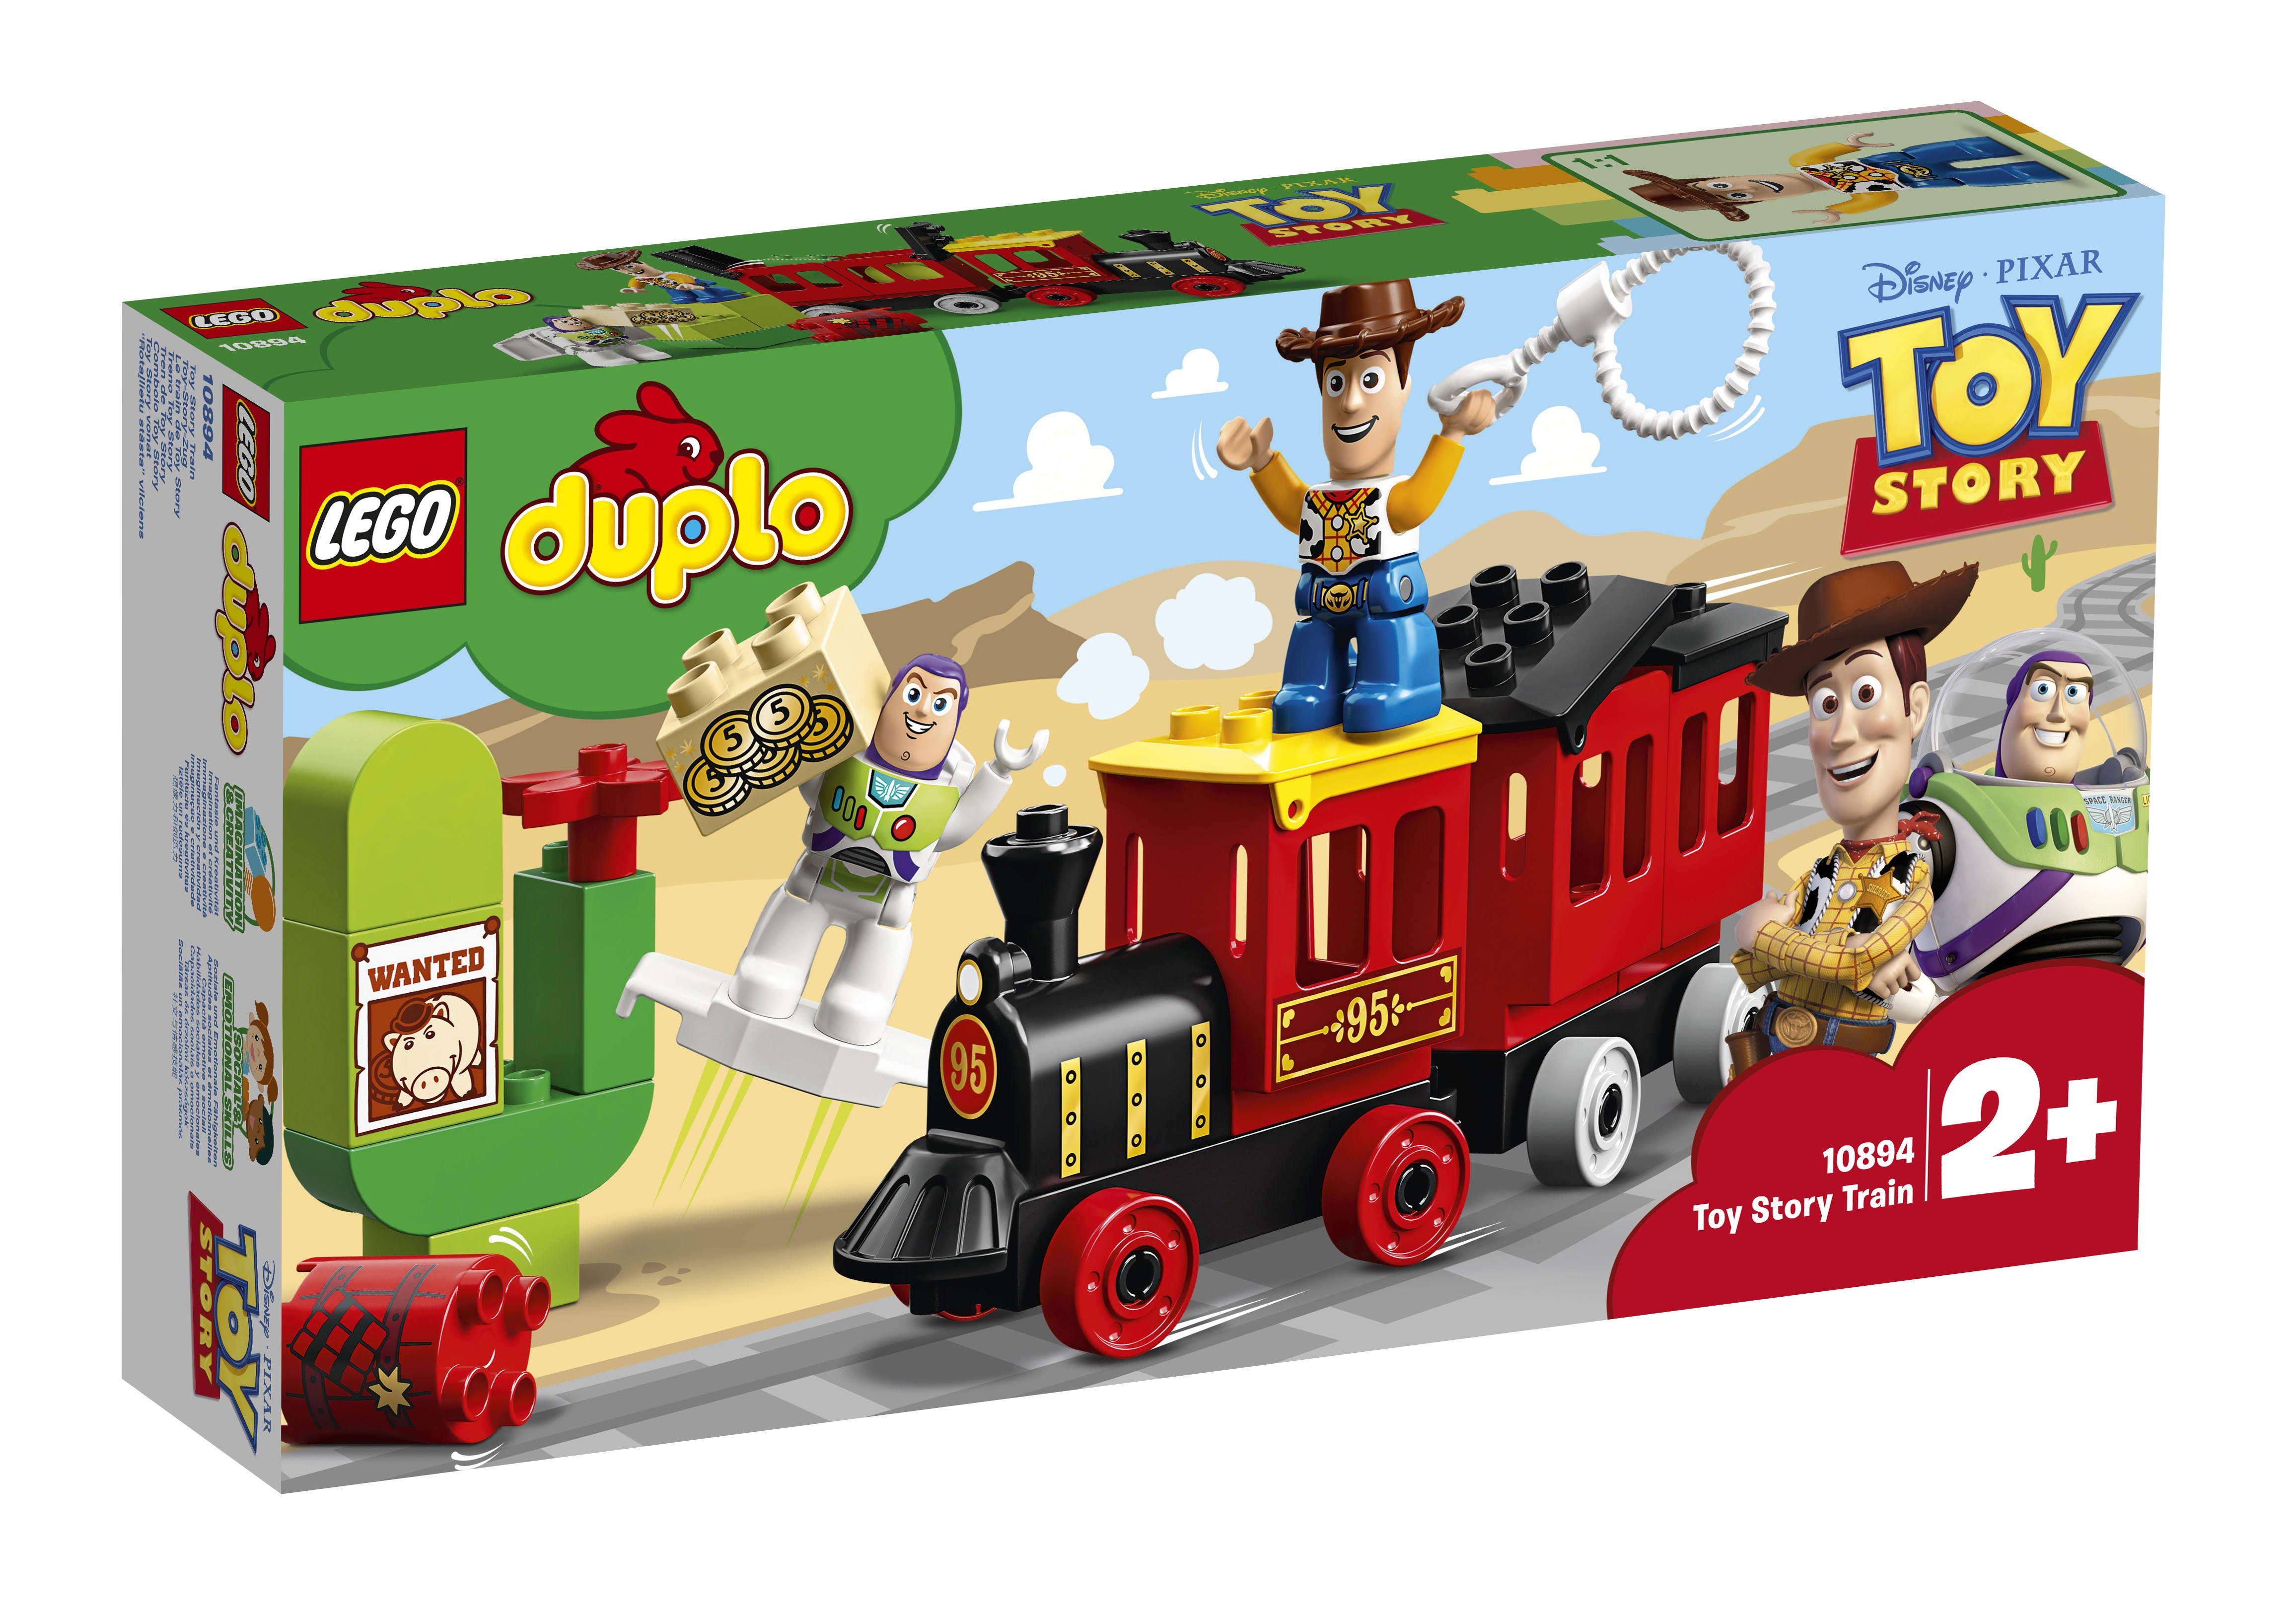 Lego Duplo Toy Story Train Play Set